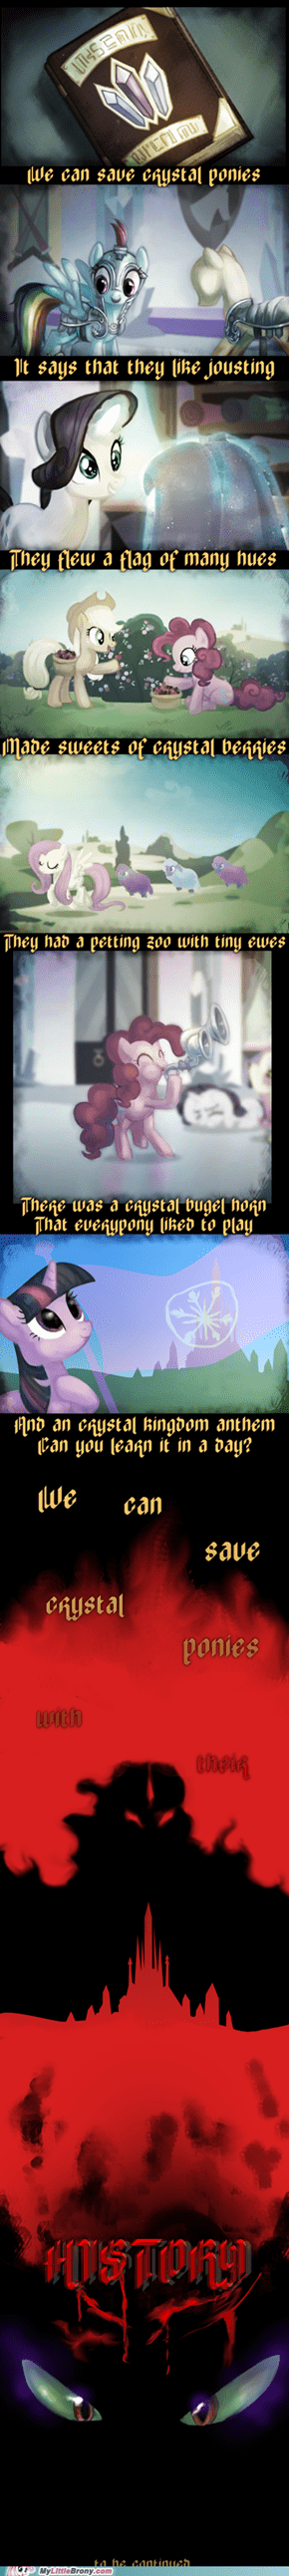 Saving the crystal ponies